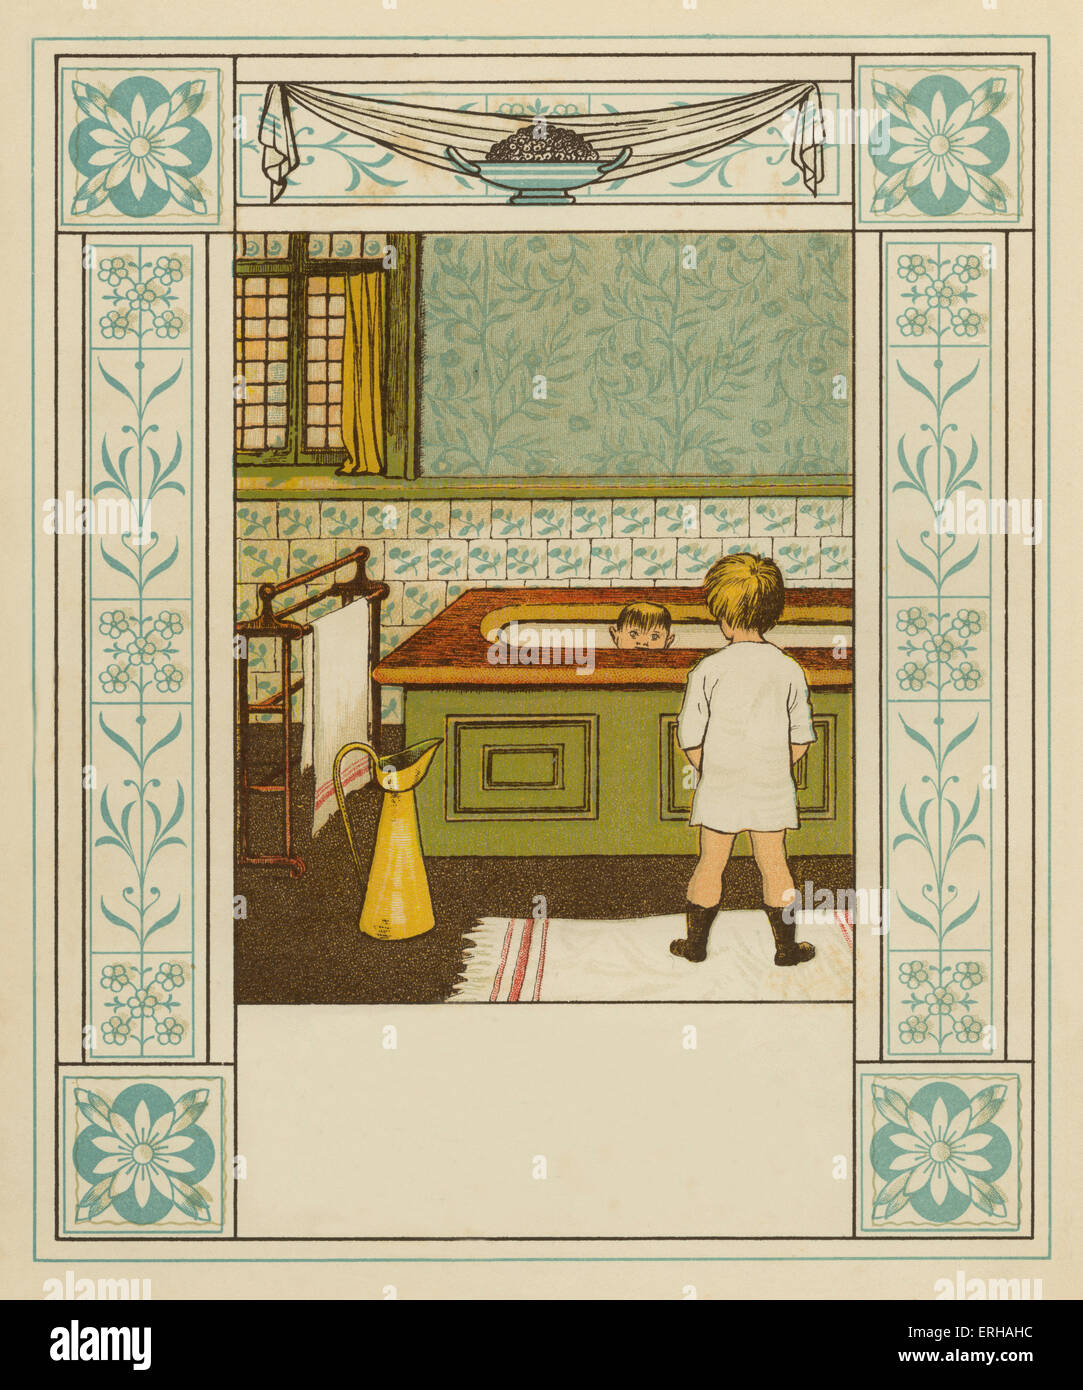 Two Victorian brothers in the bathroom, after an illustration by J.G. Sowerby. The younger brother sits in the bath, - Stock Image